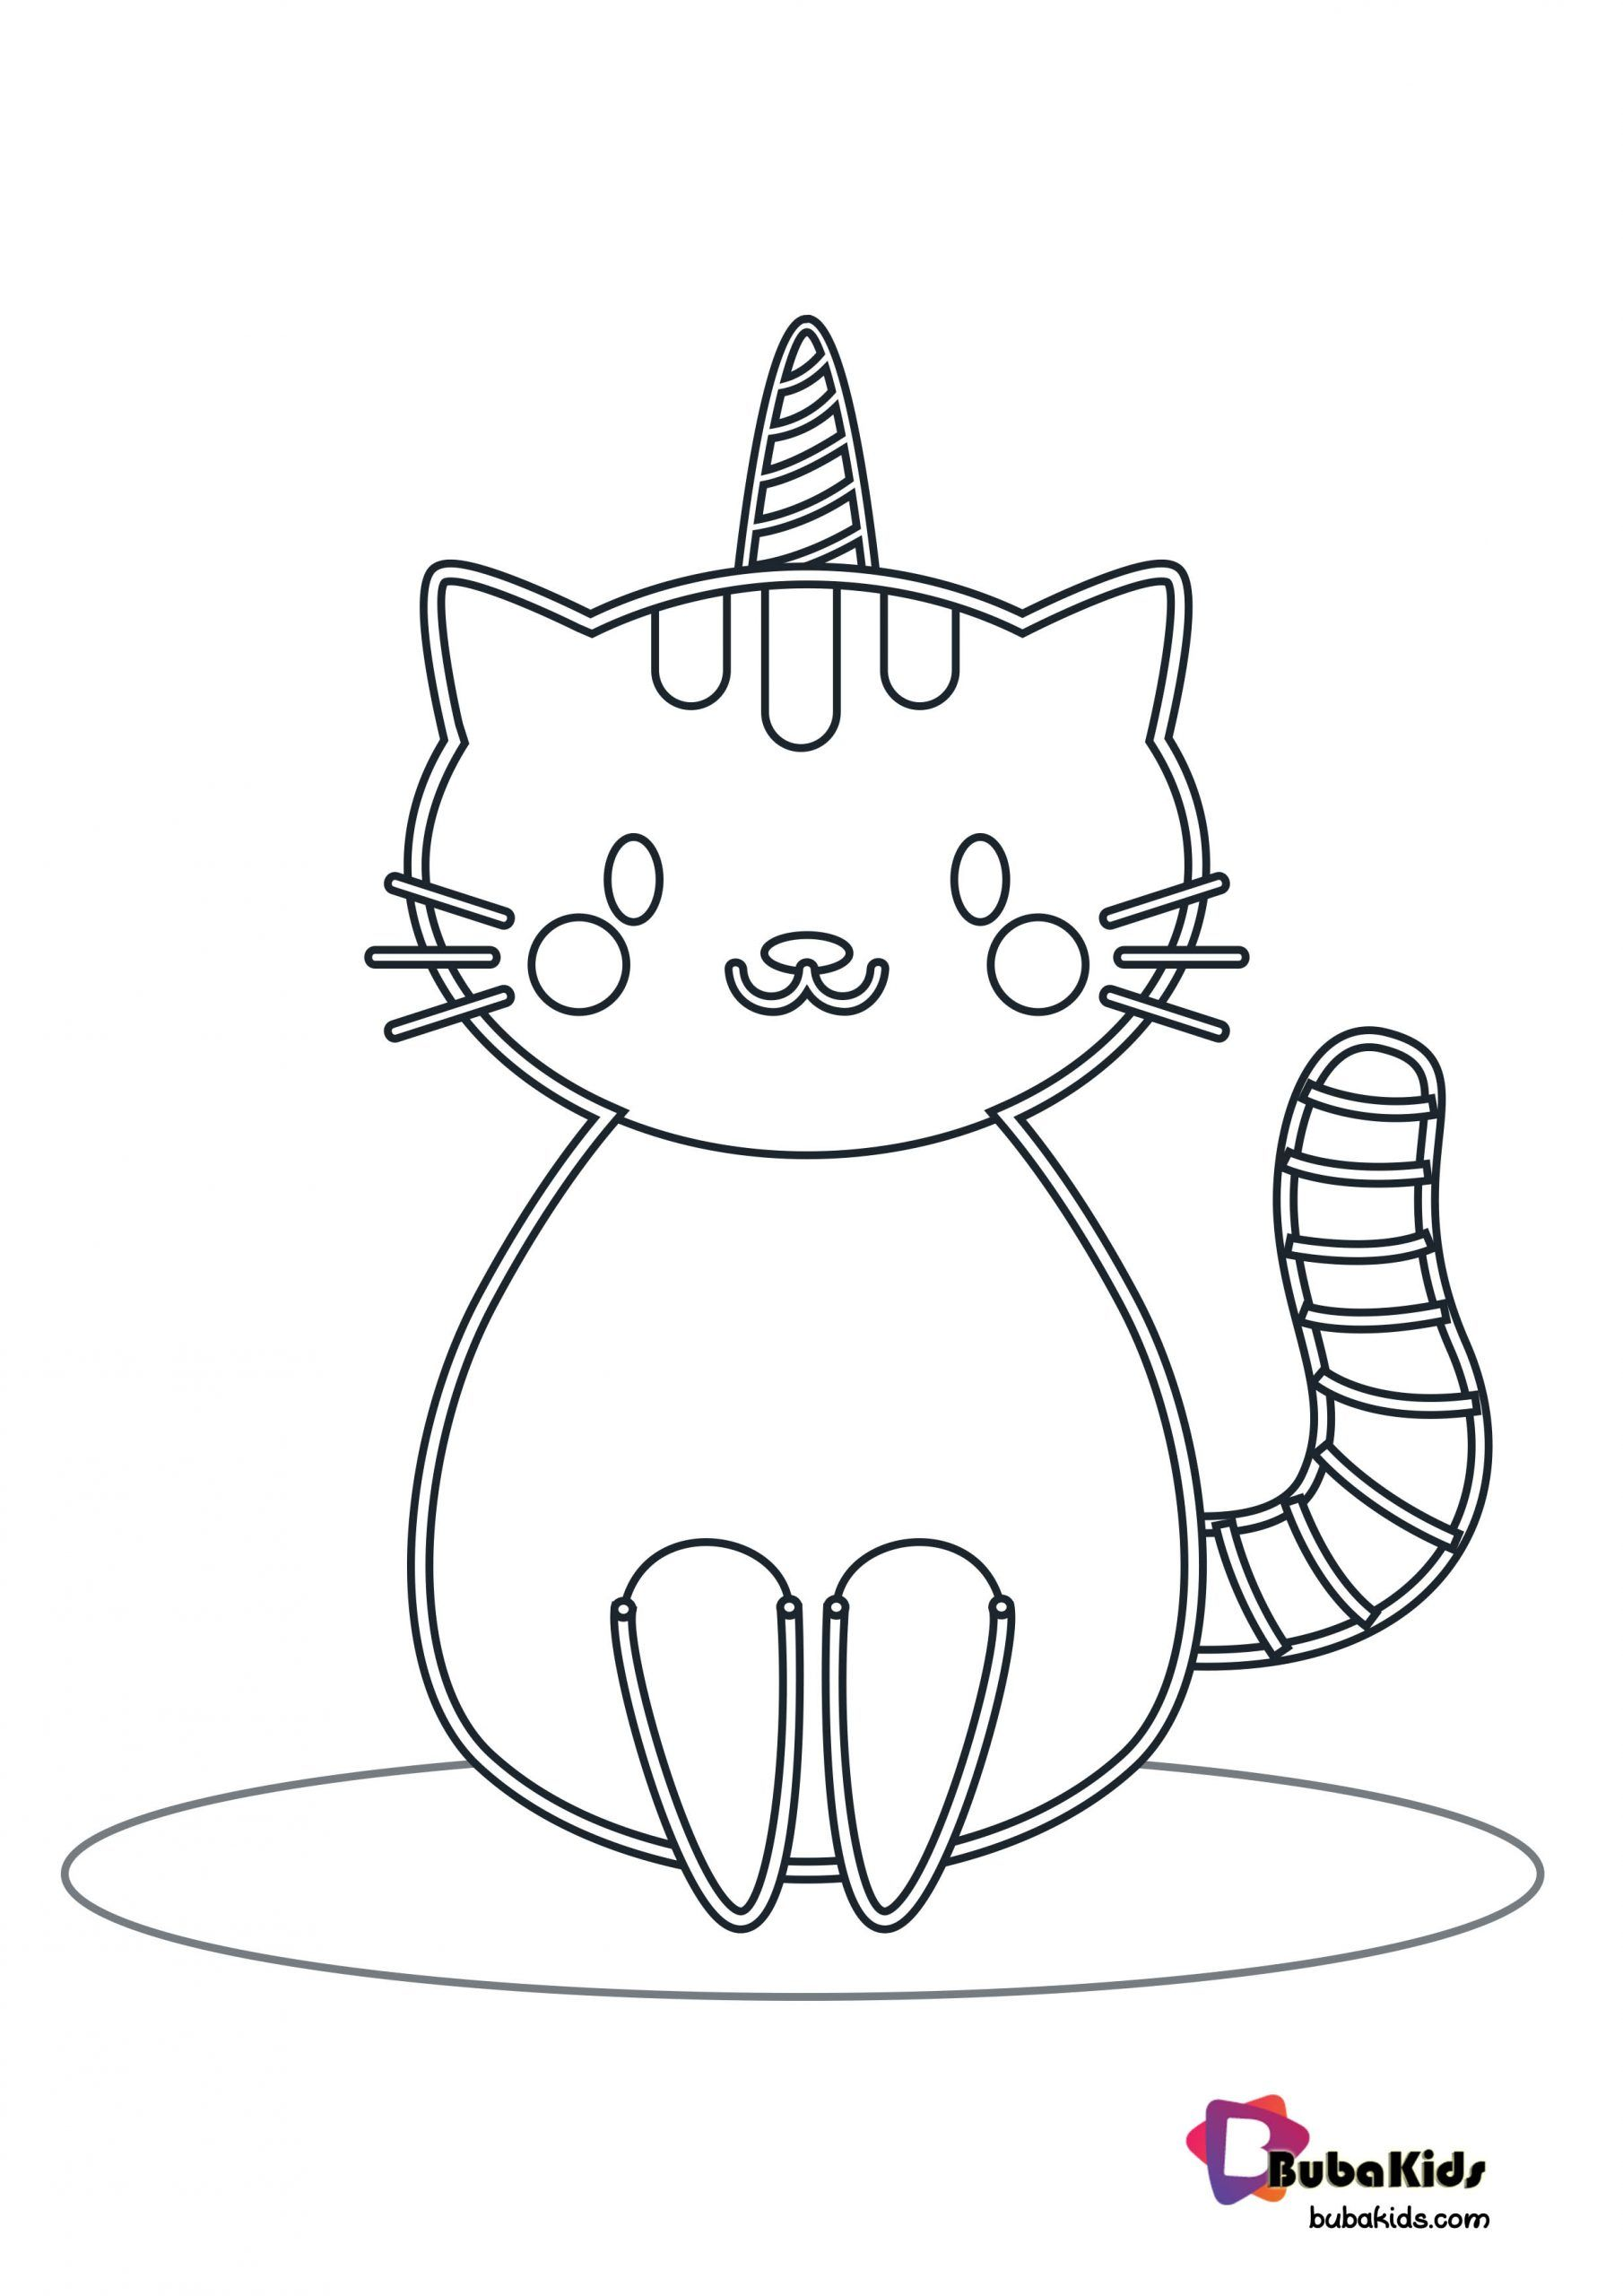 Unicorn Cat Coloring Page Collection Of Animal Coloring Pages For Teenage Printable That You Can Do Cat Coloring Page Cat Coloring Book Unicorn Coloring Pages